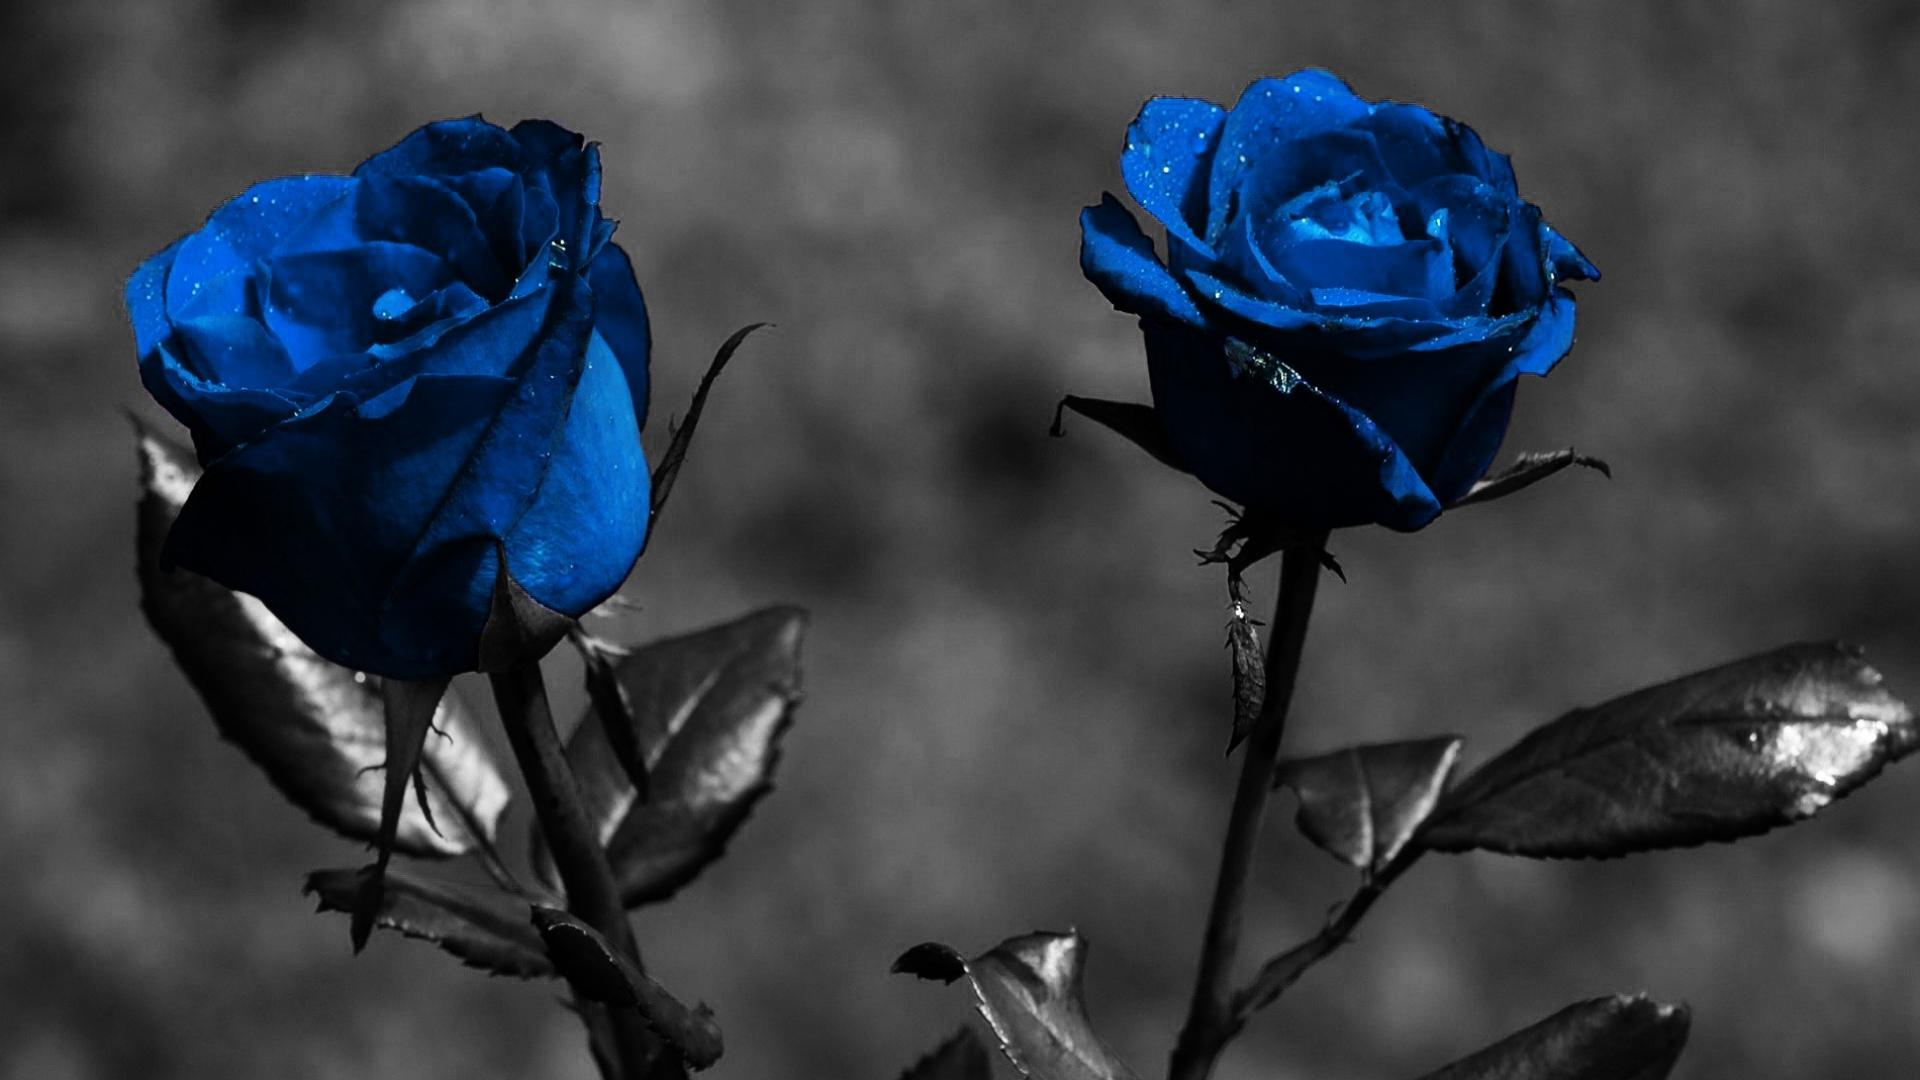 Black Rose Wallpapers High Quality Download Free